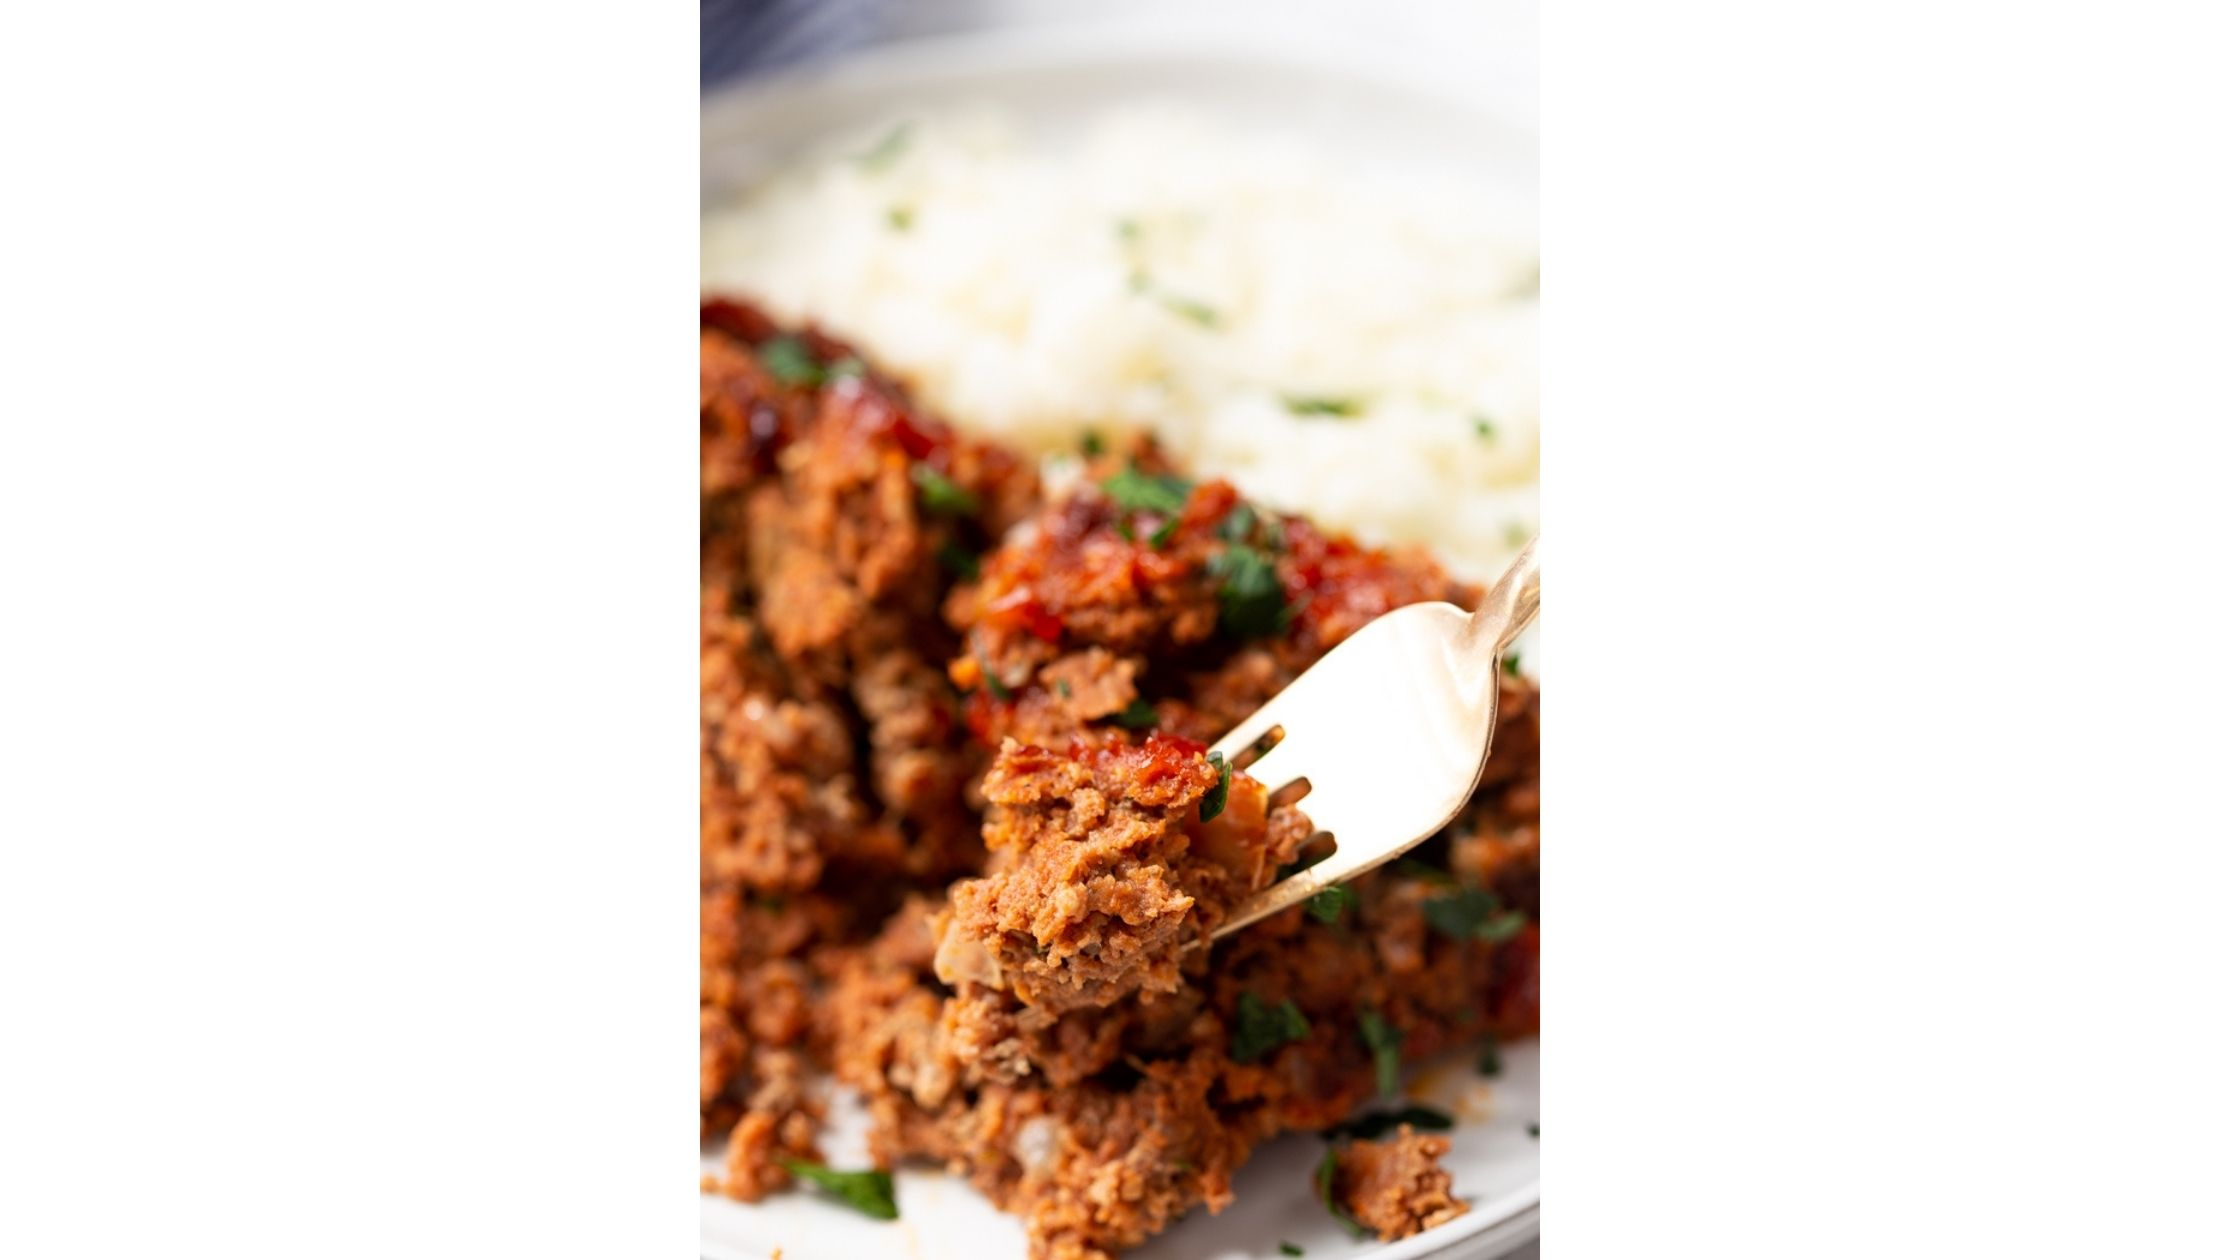 The Keto Meatloaf from The Eazy Peazy Mealz